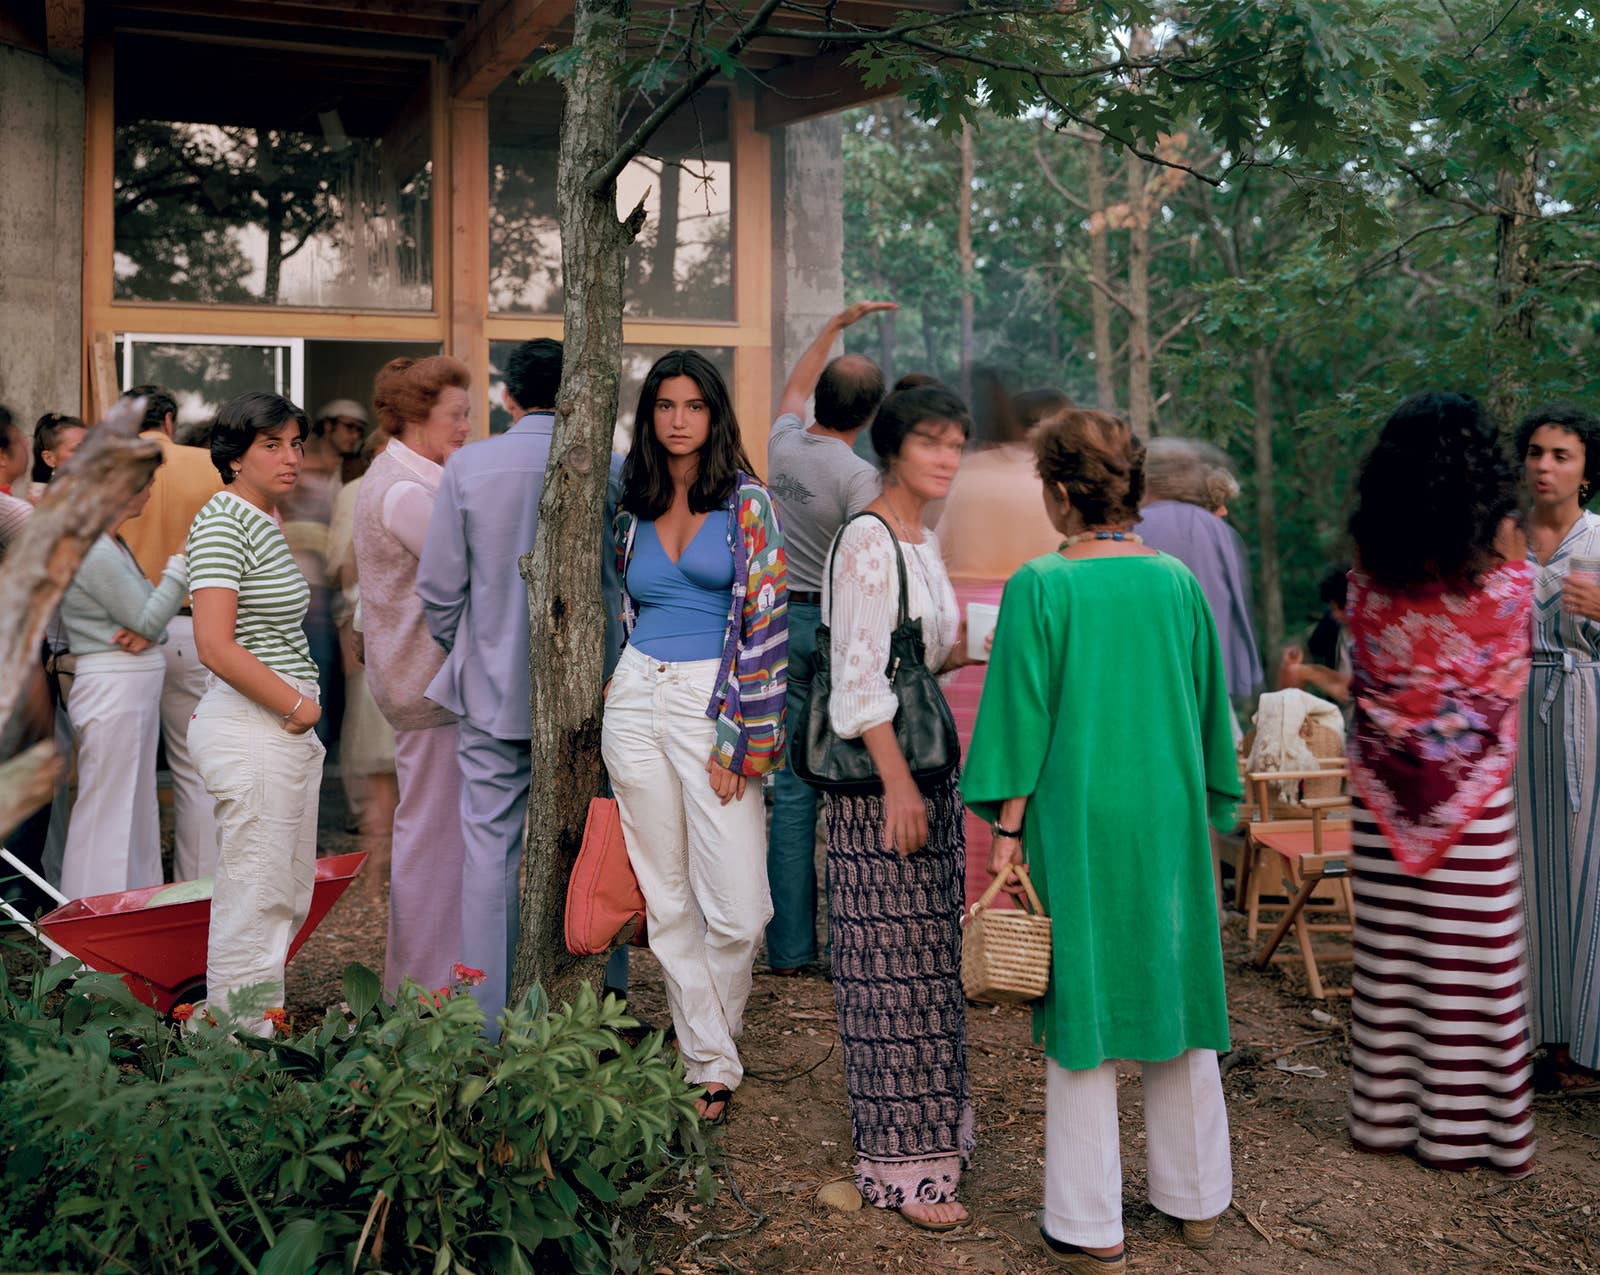 A young woman stands next to a tree and stares into the camera while surrounded by people at a crowded function